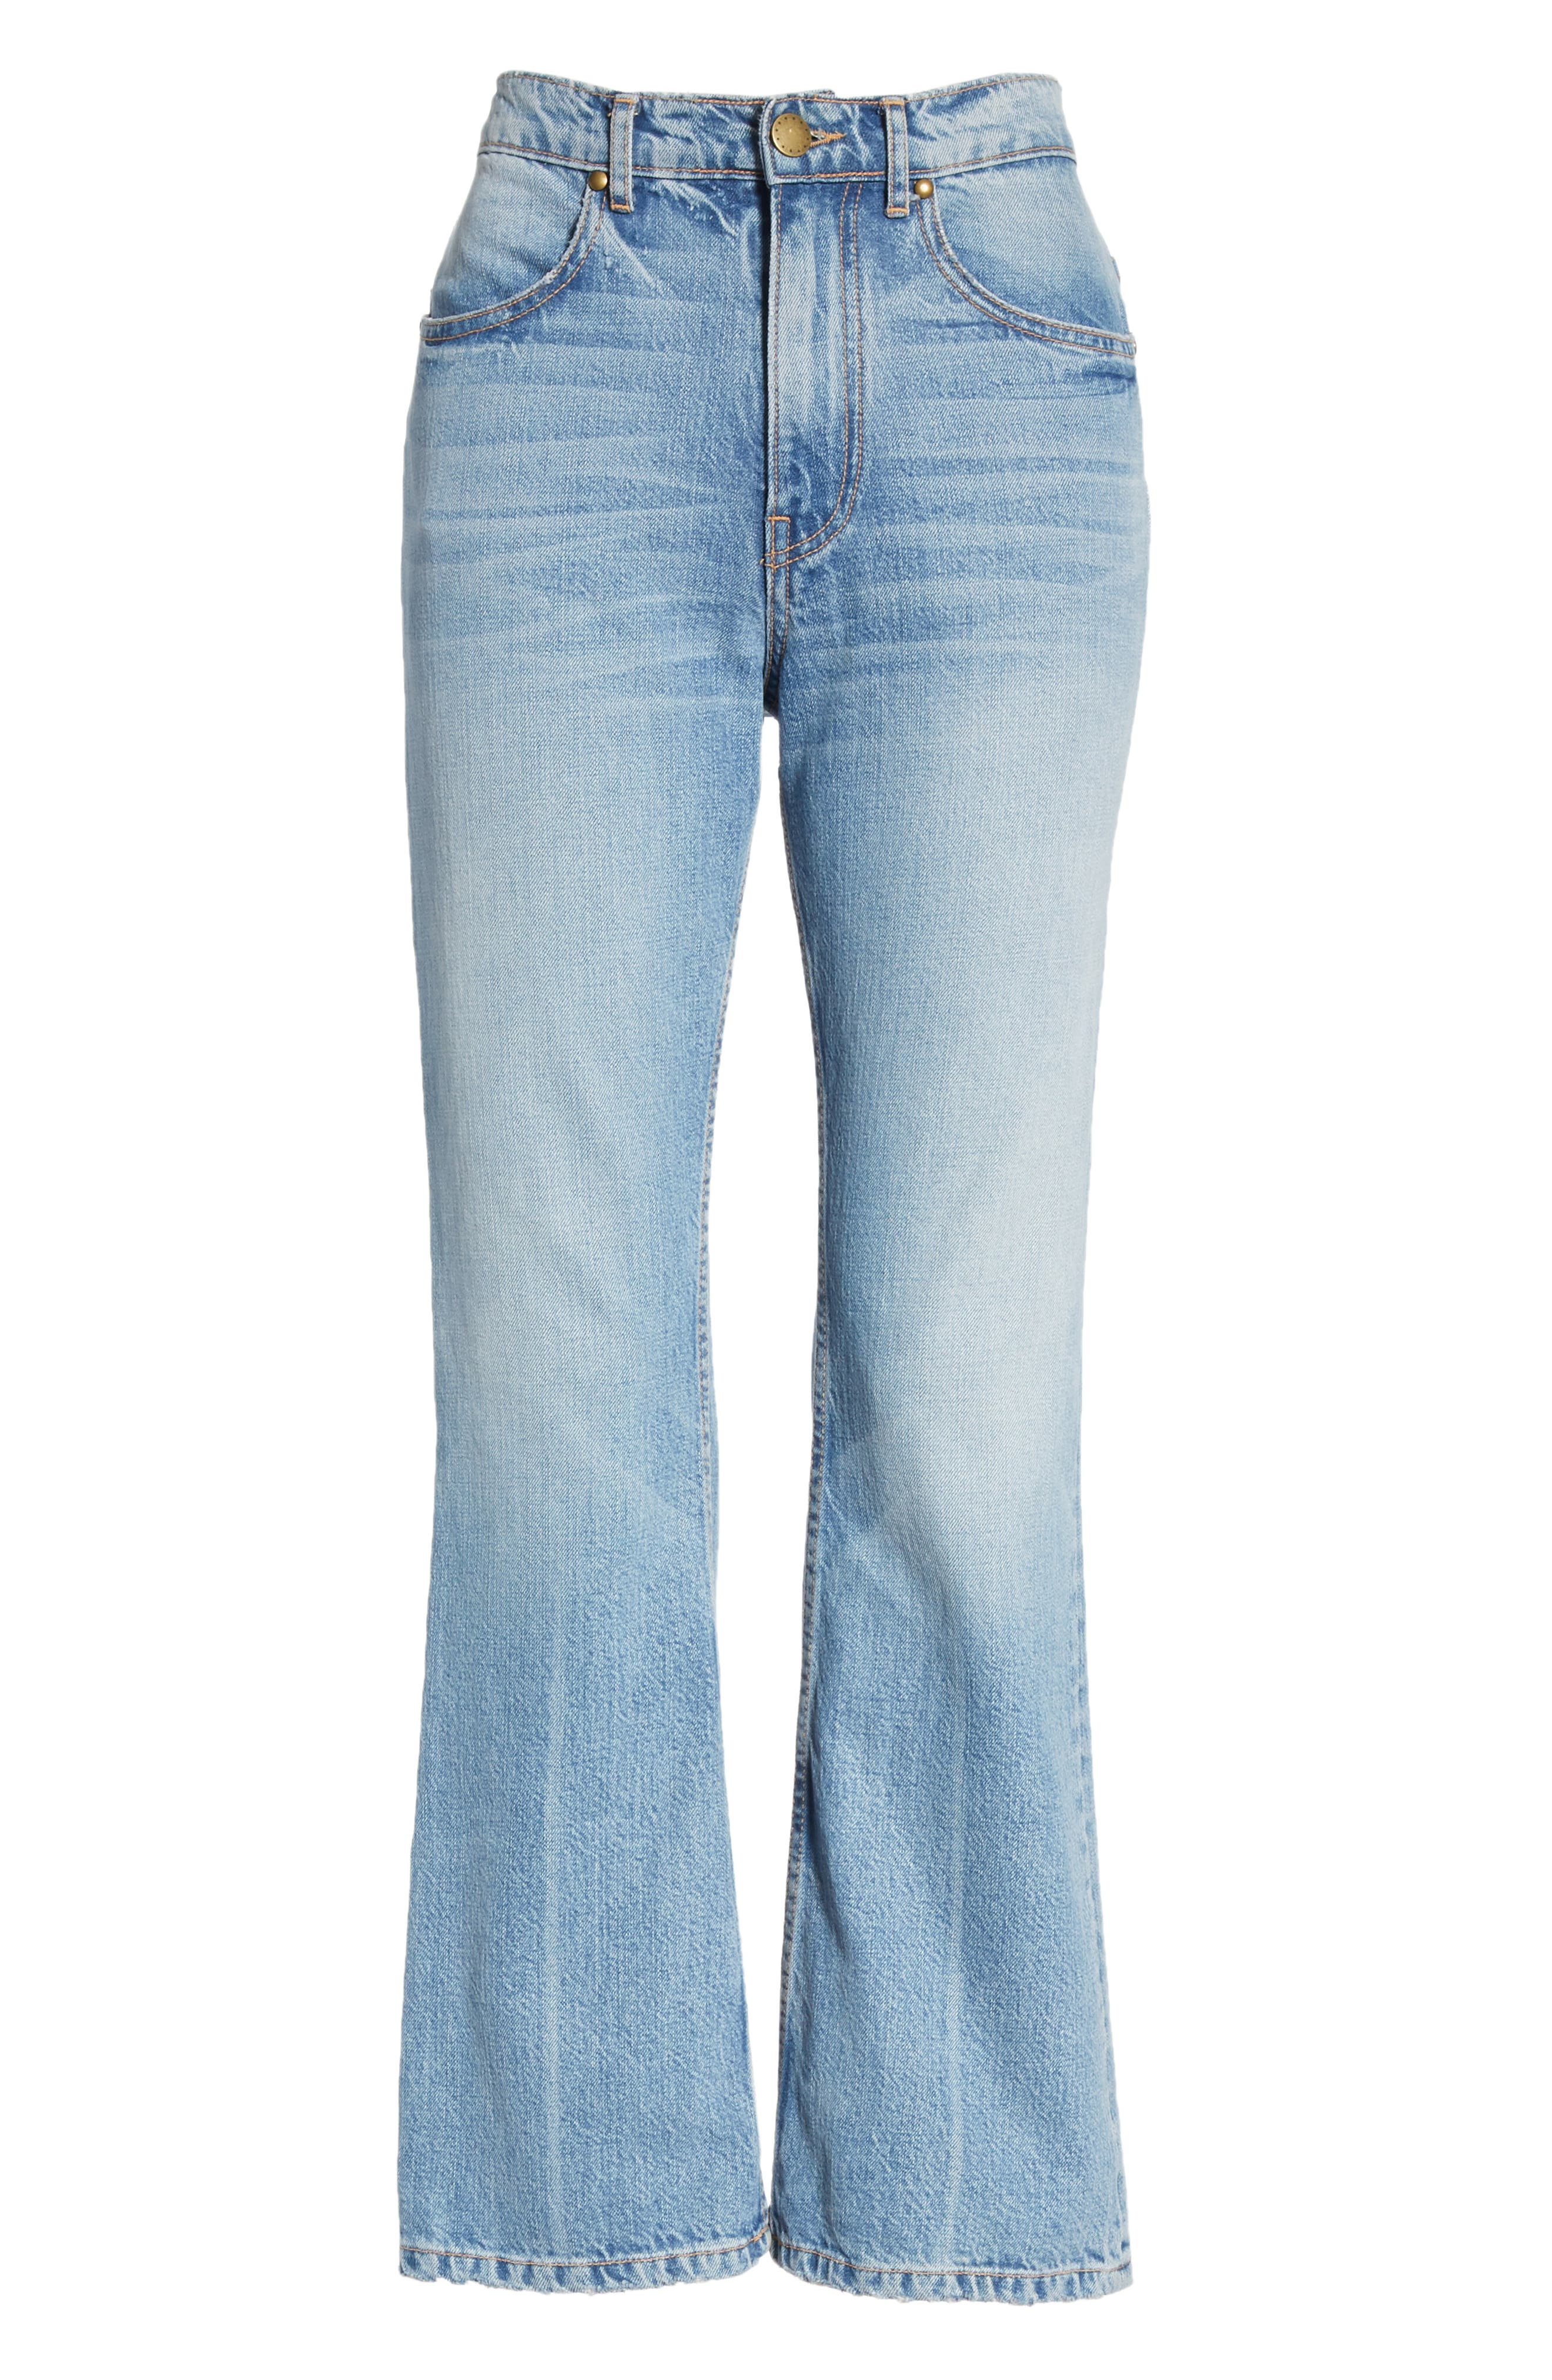 Western Crop Bootcut Jeans,                             Alternate thumbnail 7, color,                             TENNESSEE WASH